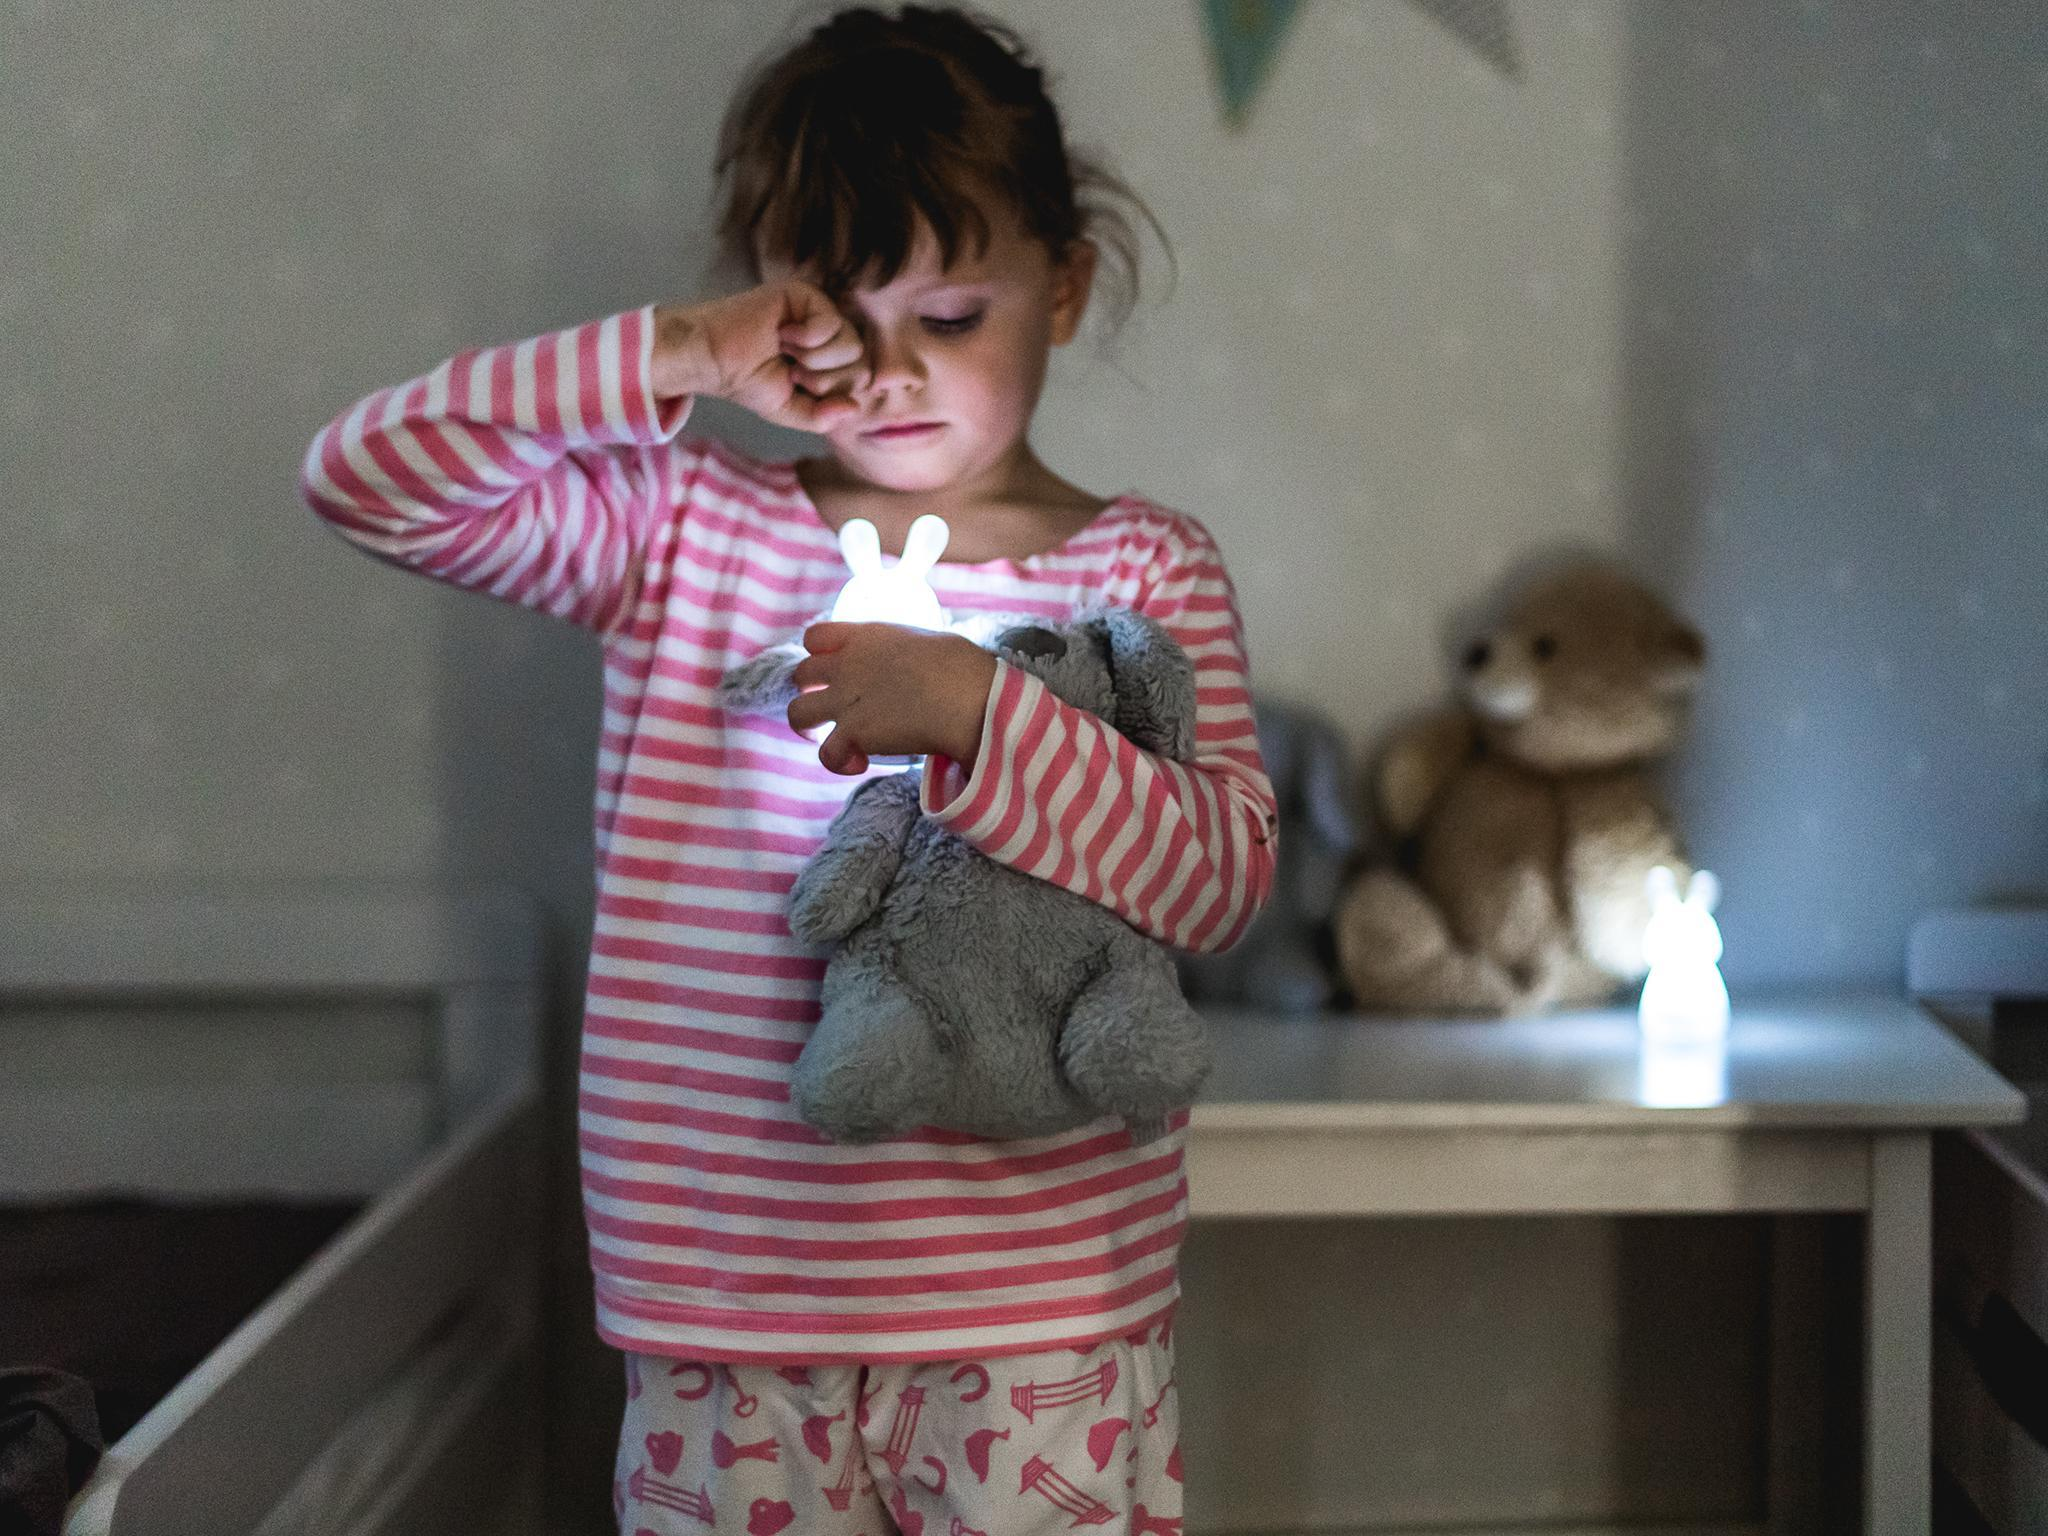 Childrens Nightlights 15 Best Nightlights The Independent